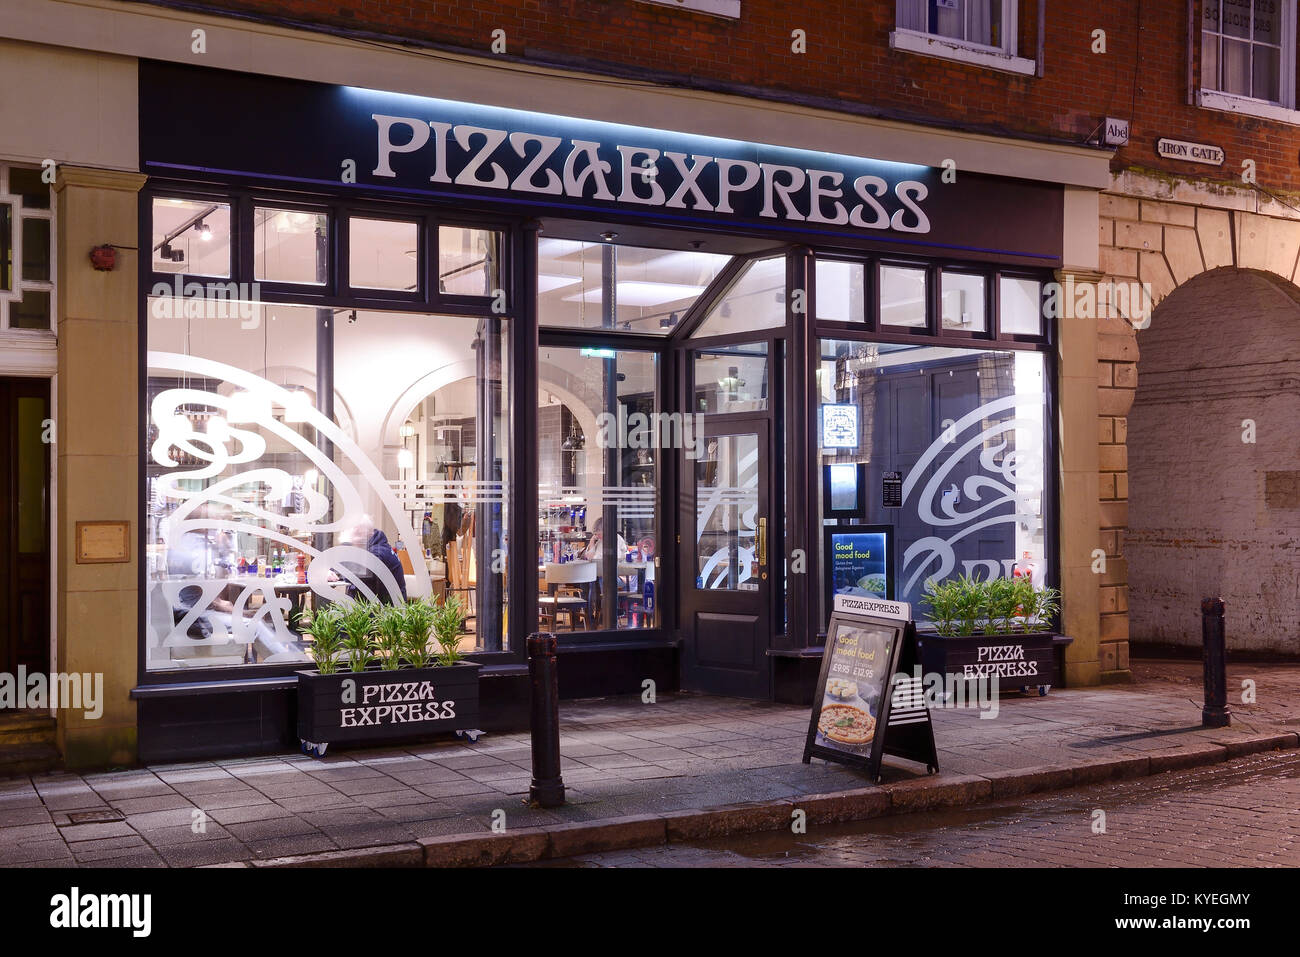 Pizza Express Restaurant On Iron Gate In Derby City Centre